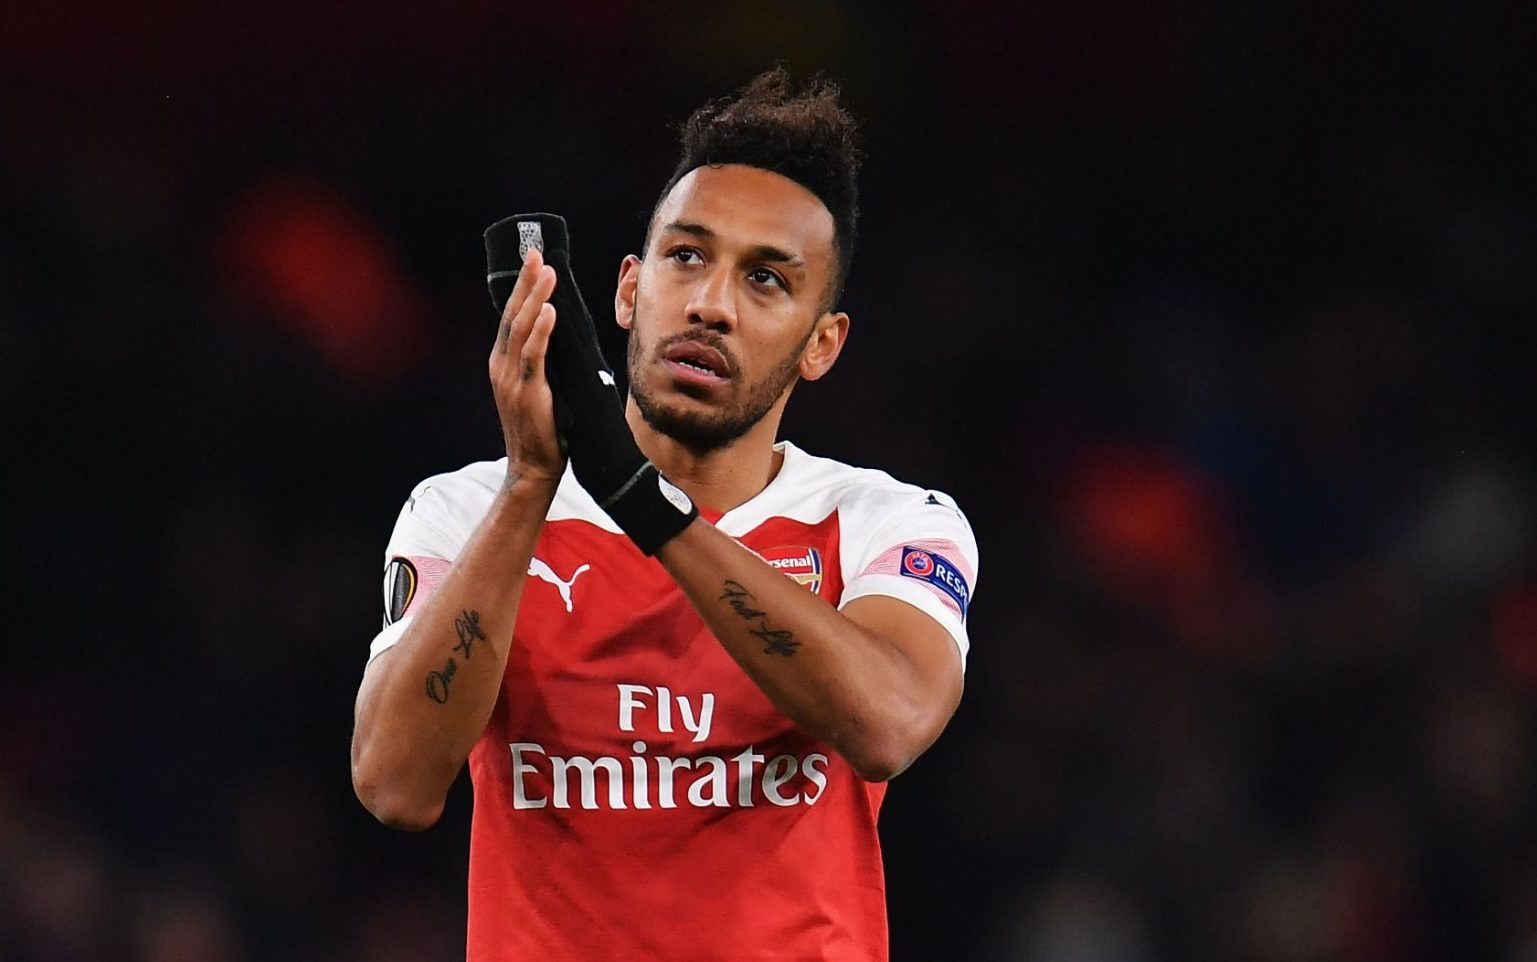 Pierre-Emerick Aubameyang gives Arsenal new injury scare after Napoli win